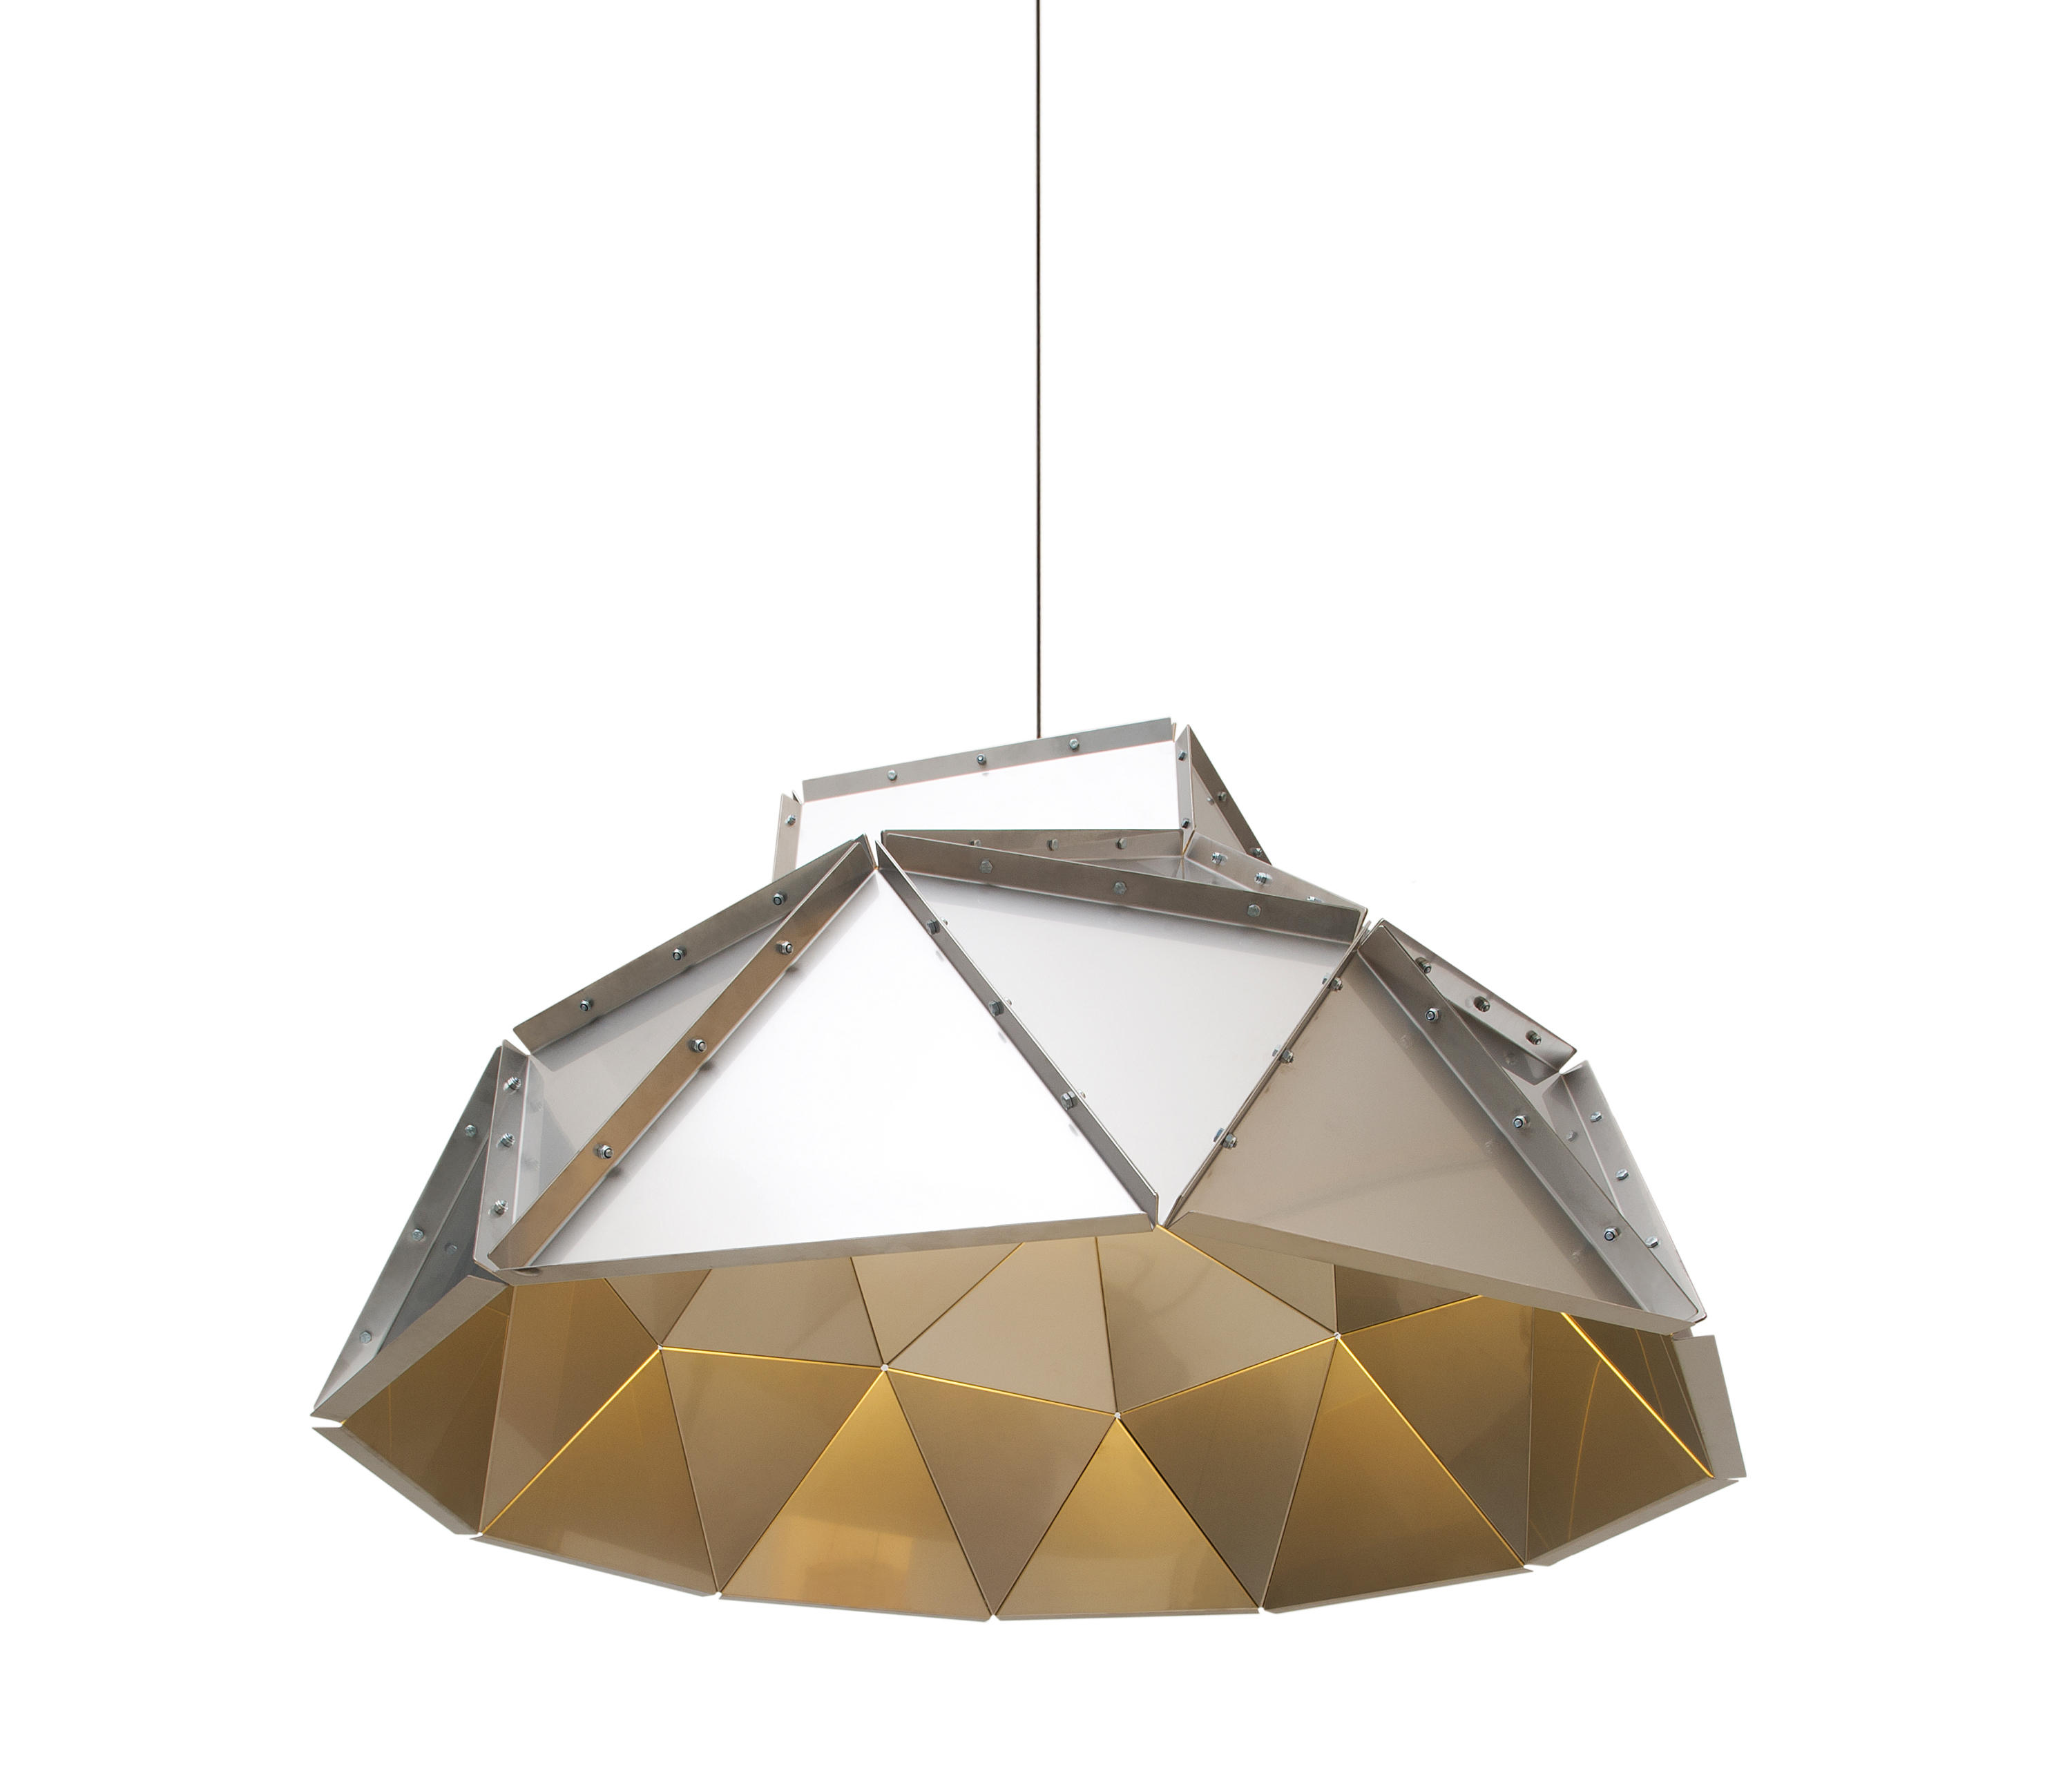 Apollo Suspended Lights From Dark At Night Architonic